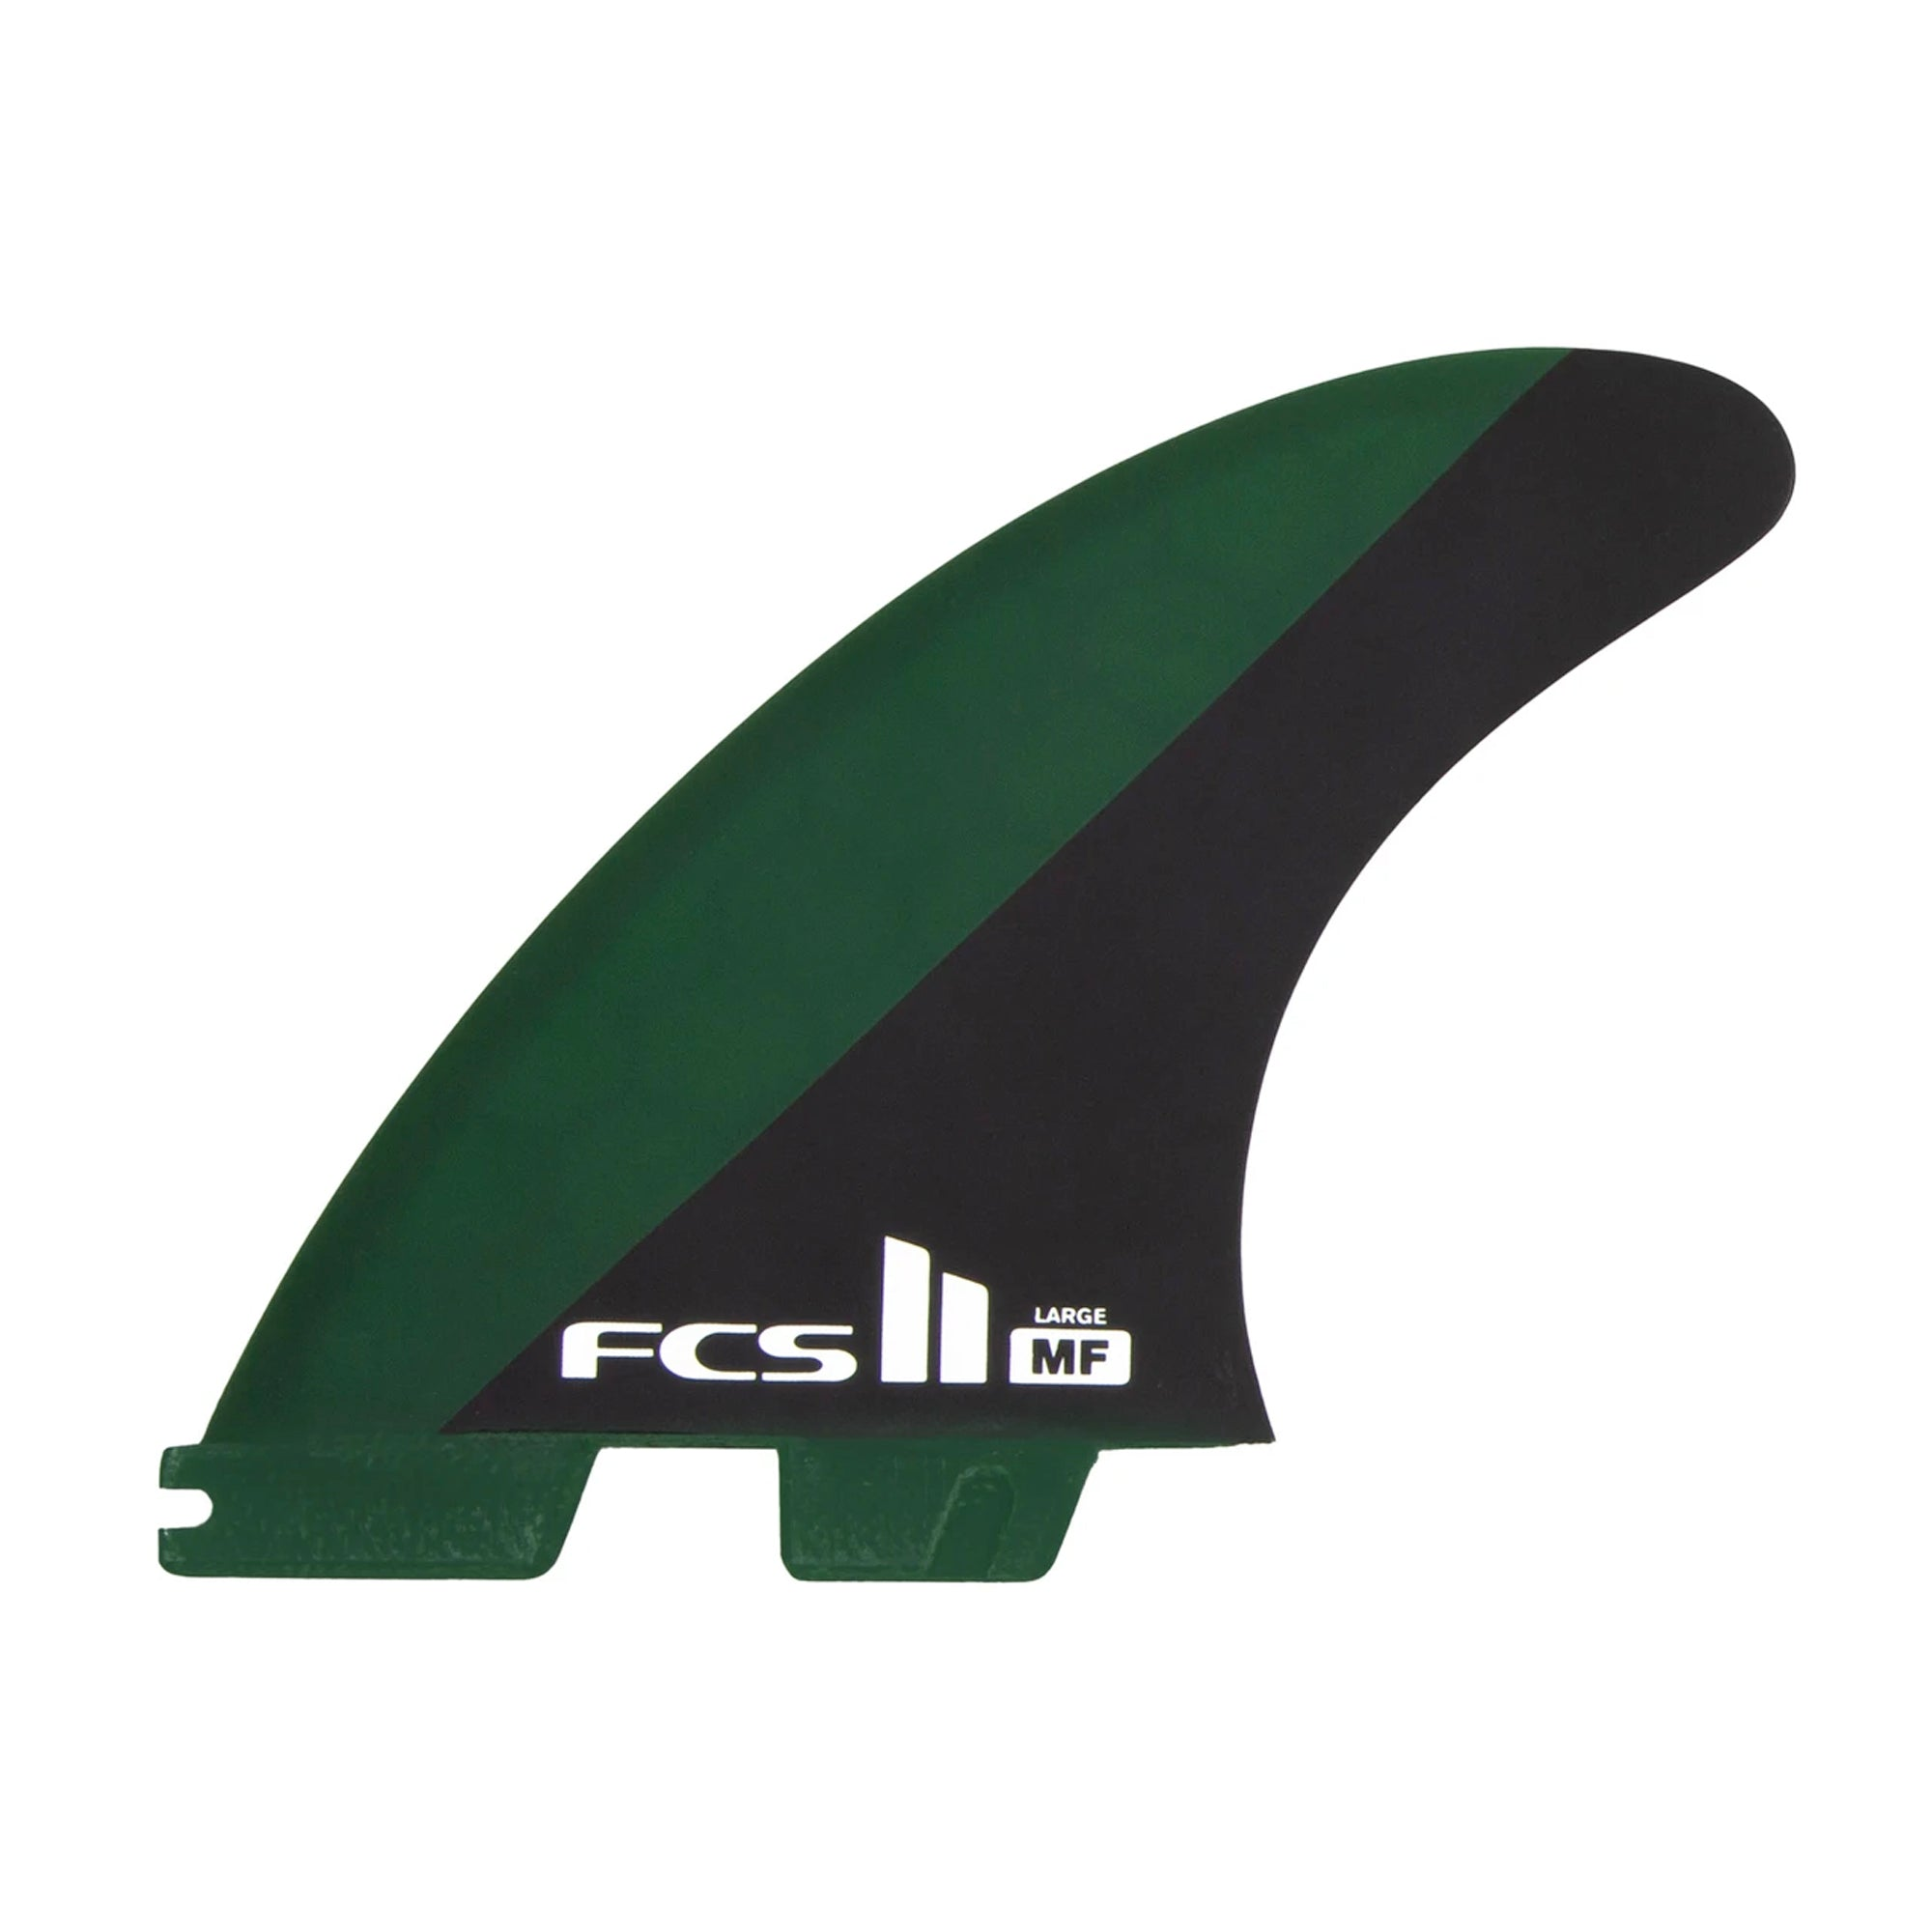 FCS II MF Performance Core Large Thruster Fin Set - Black/Olive